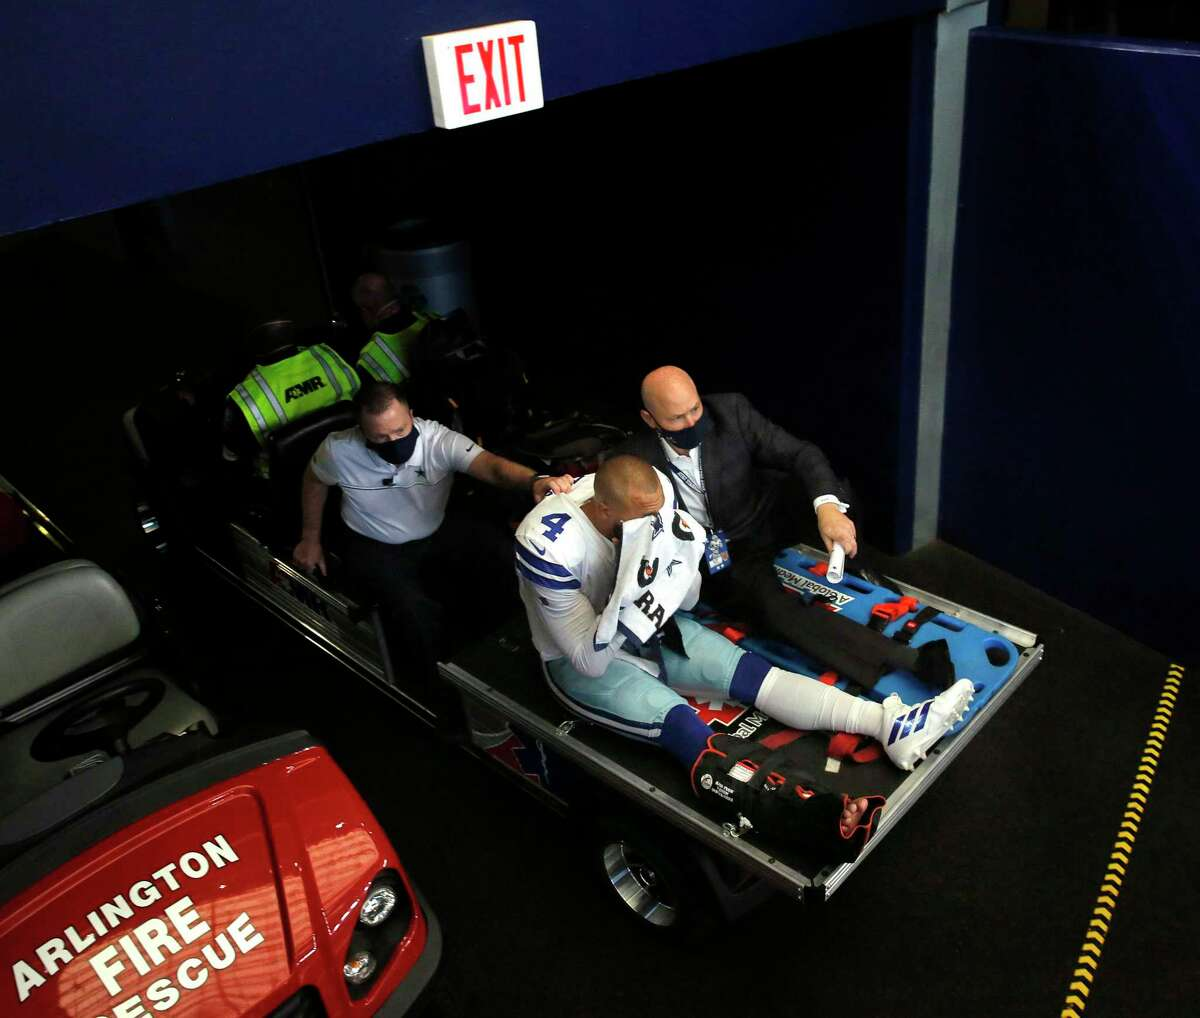 Dallas Cowboys quarterback Dak Prescott (4) is carted off the field after sustaining an ankle injury in the third quarter against the New York Giants on Sunday, Oct. 11, 2020 at AT&T Stadium Stadium in Arlington, Texas. (Tom Fox/The Dallas Morning News/TNS)